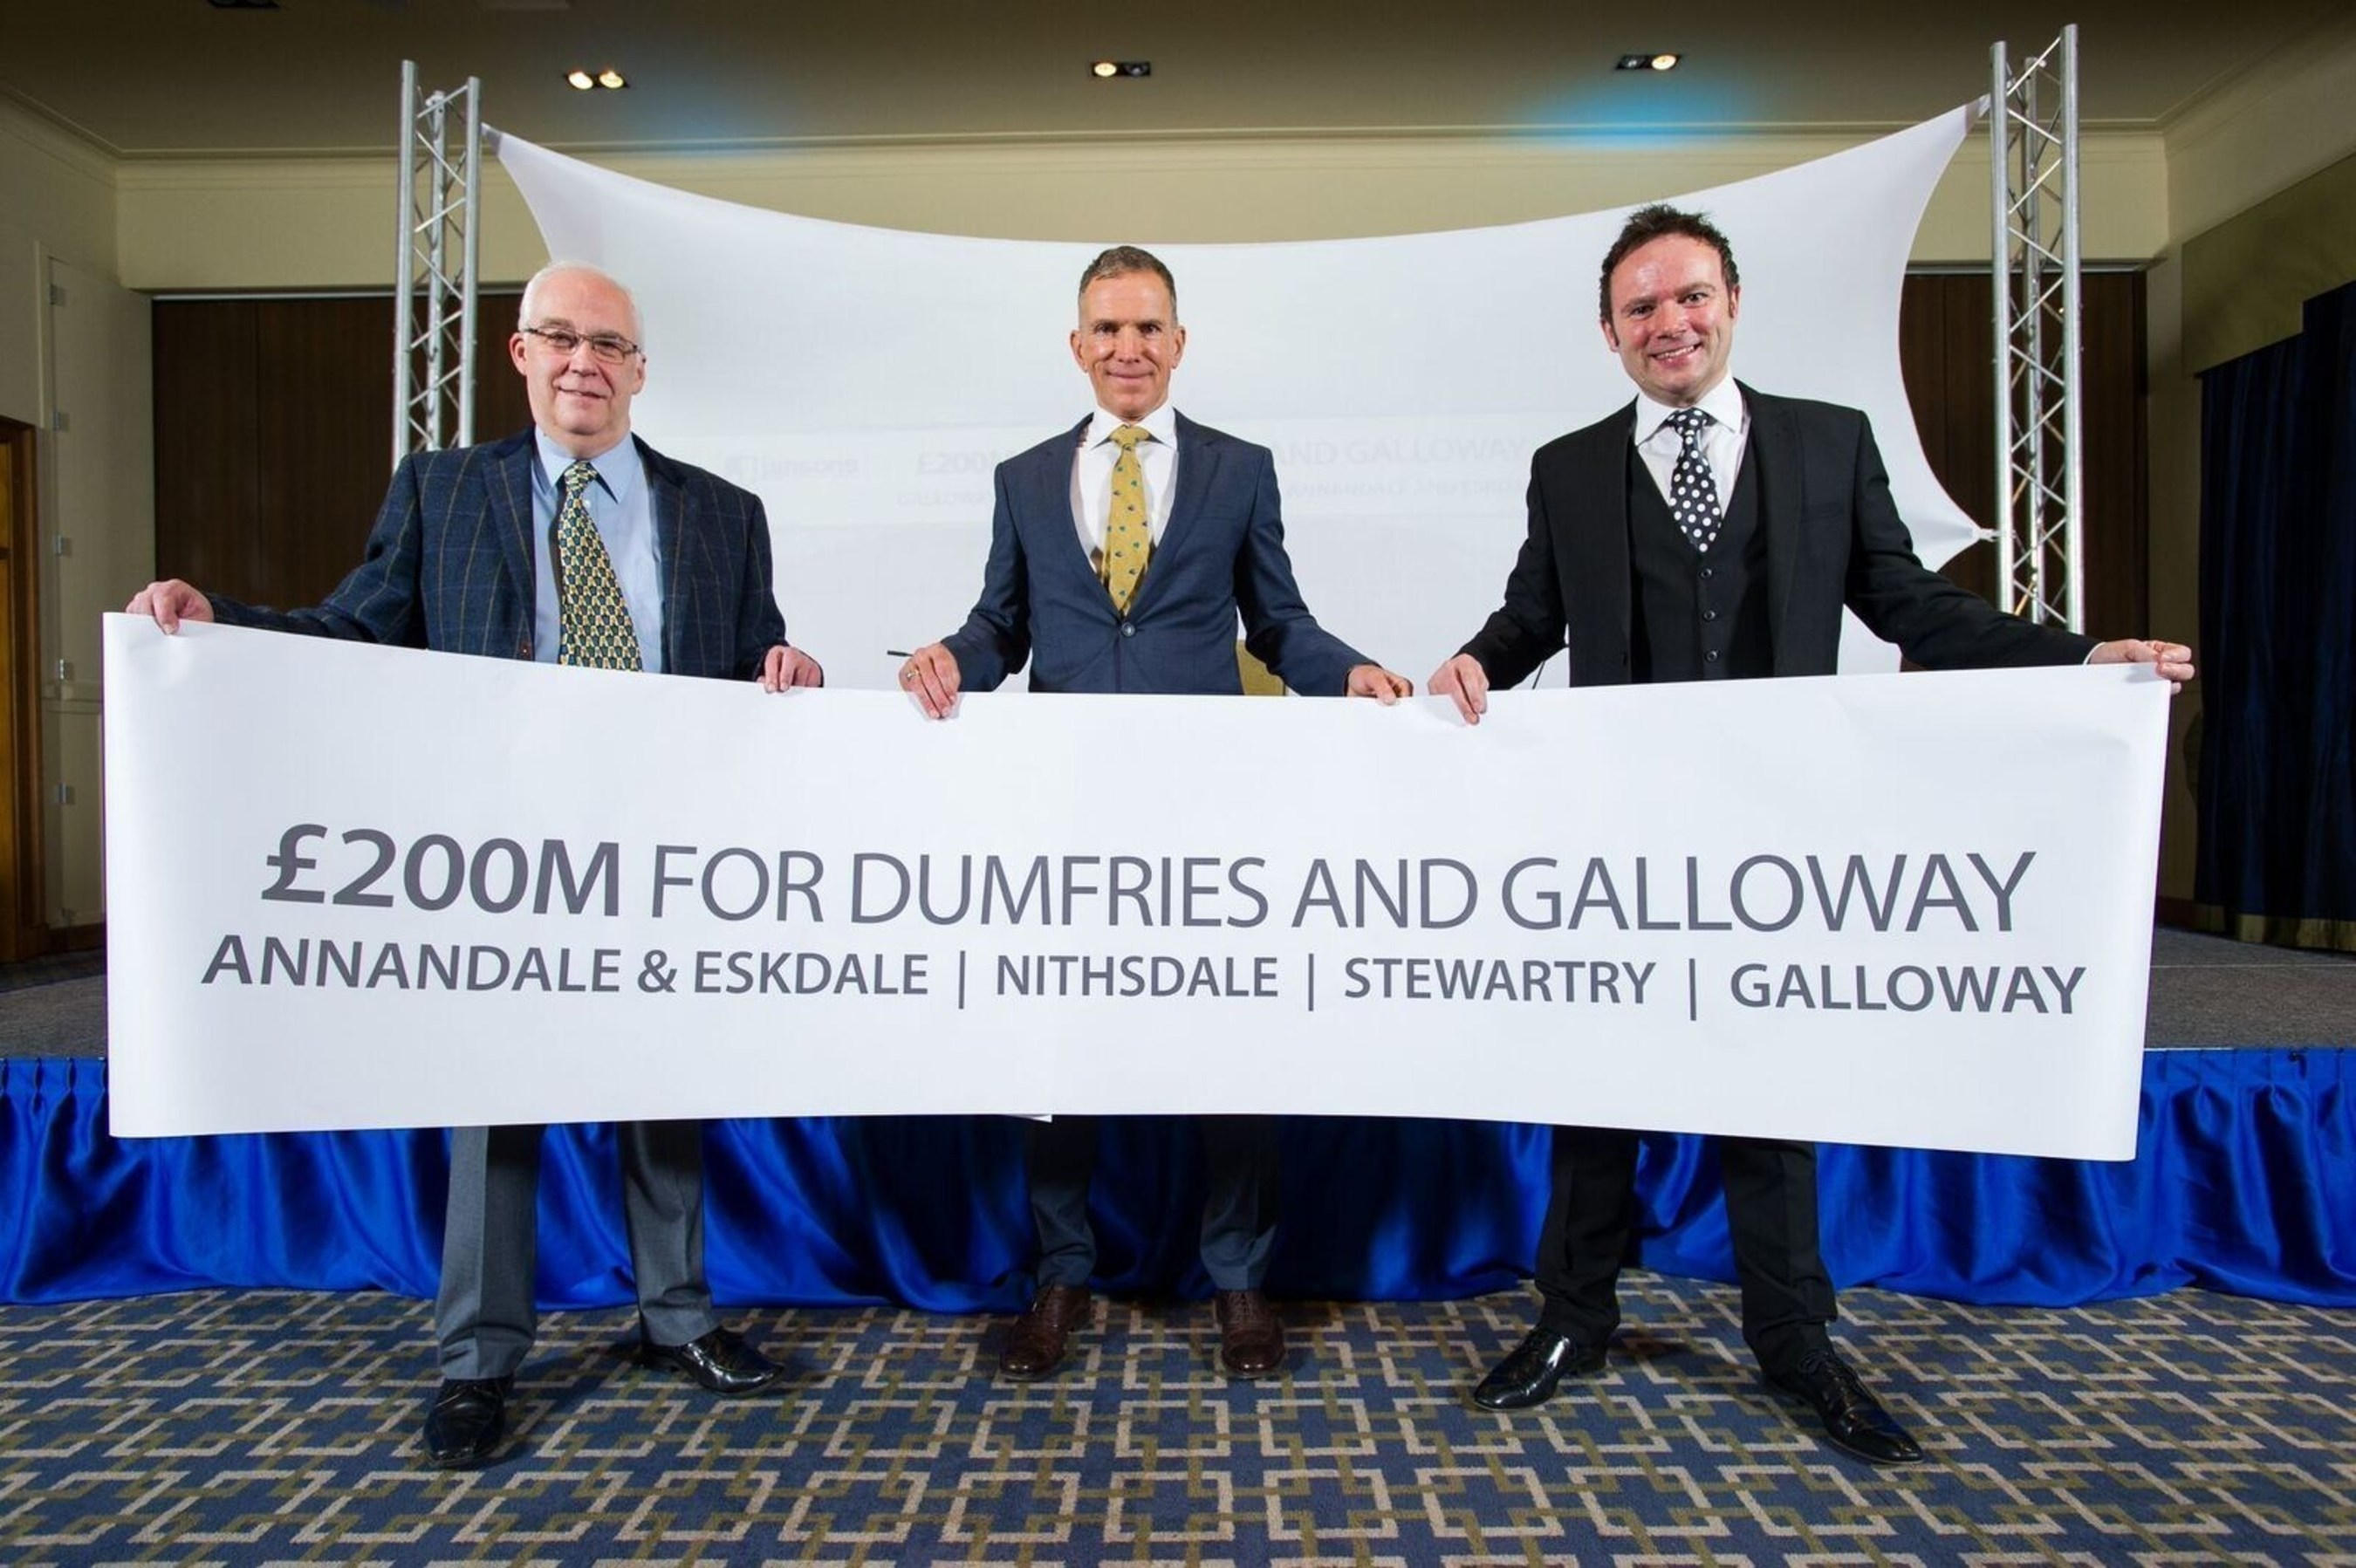 The Crichton Trust announces a major new inward investment that will transform the region of Dumfries and ...